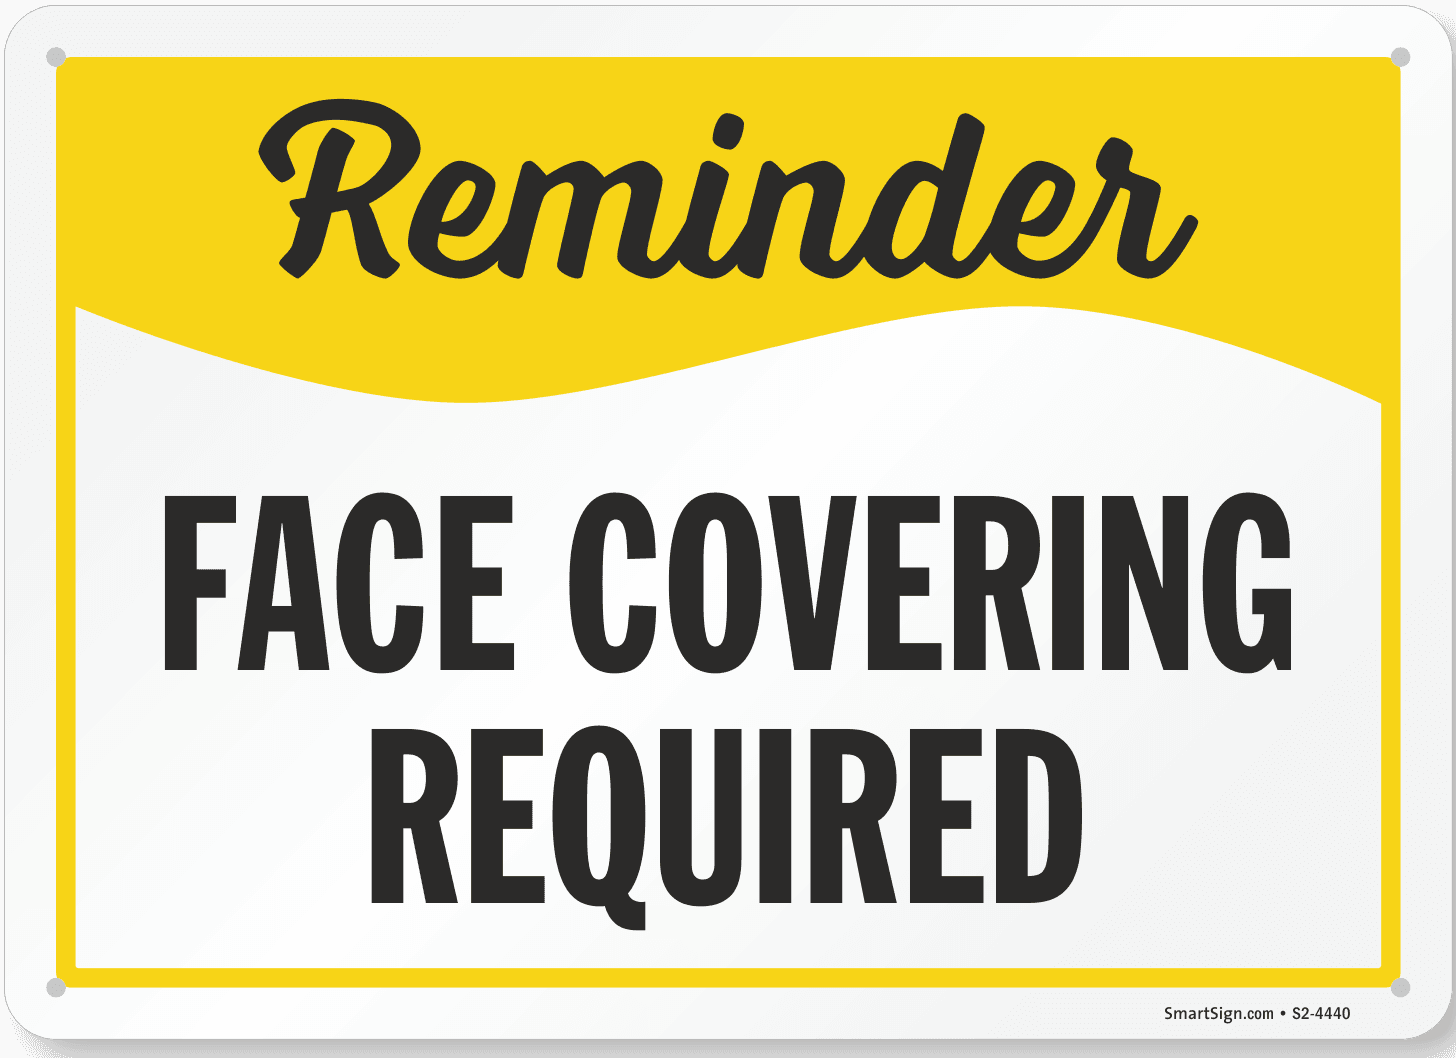 reminder-face-covering-required-s2-4440 (2)